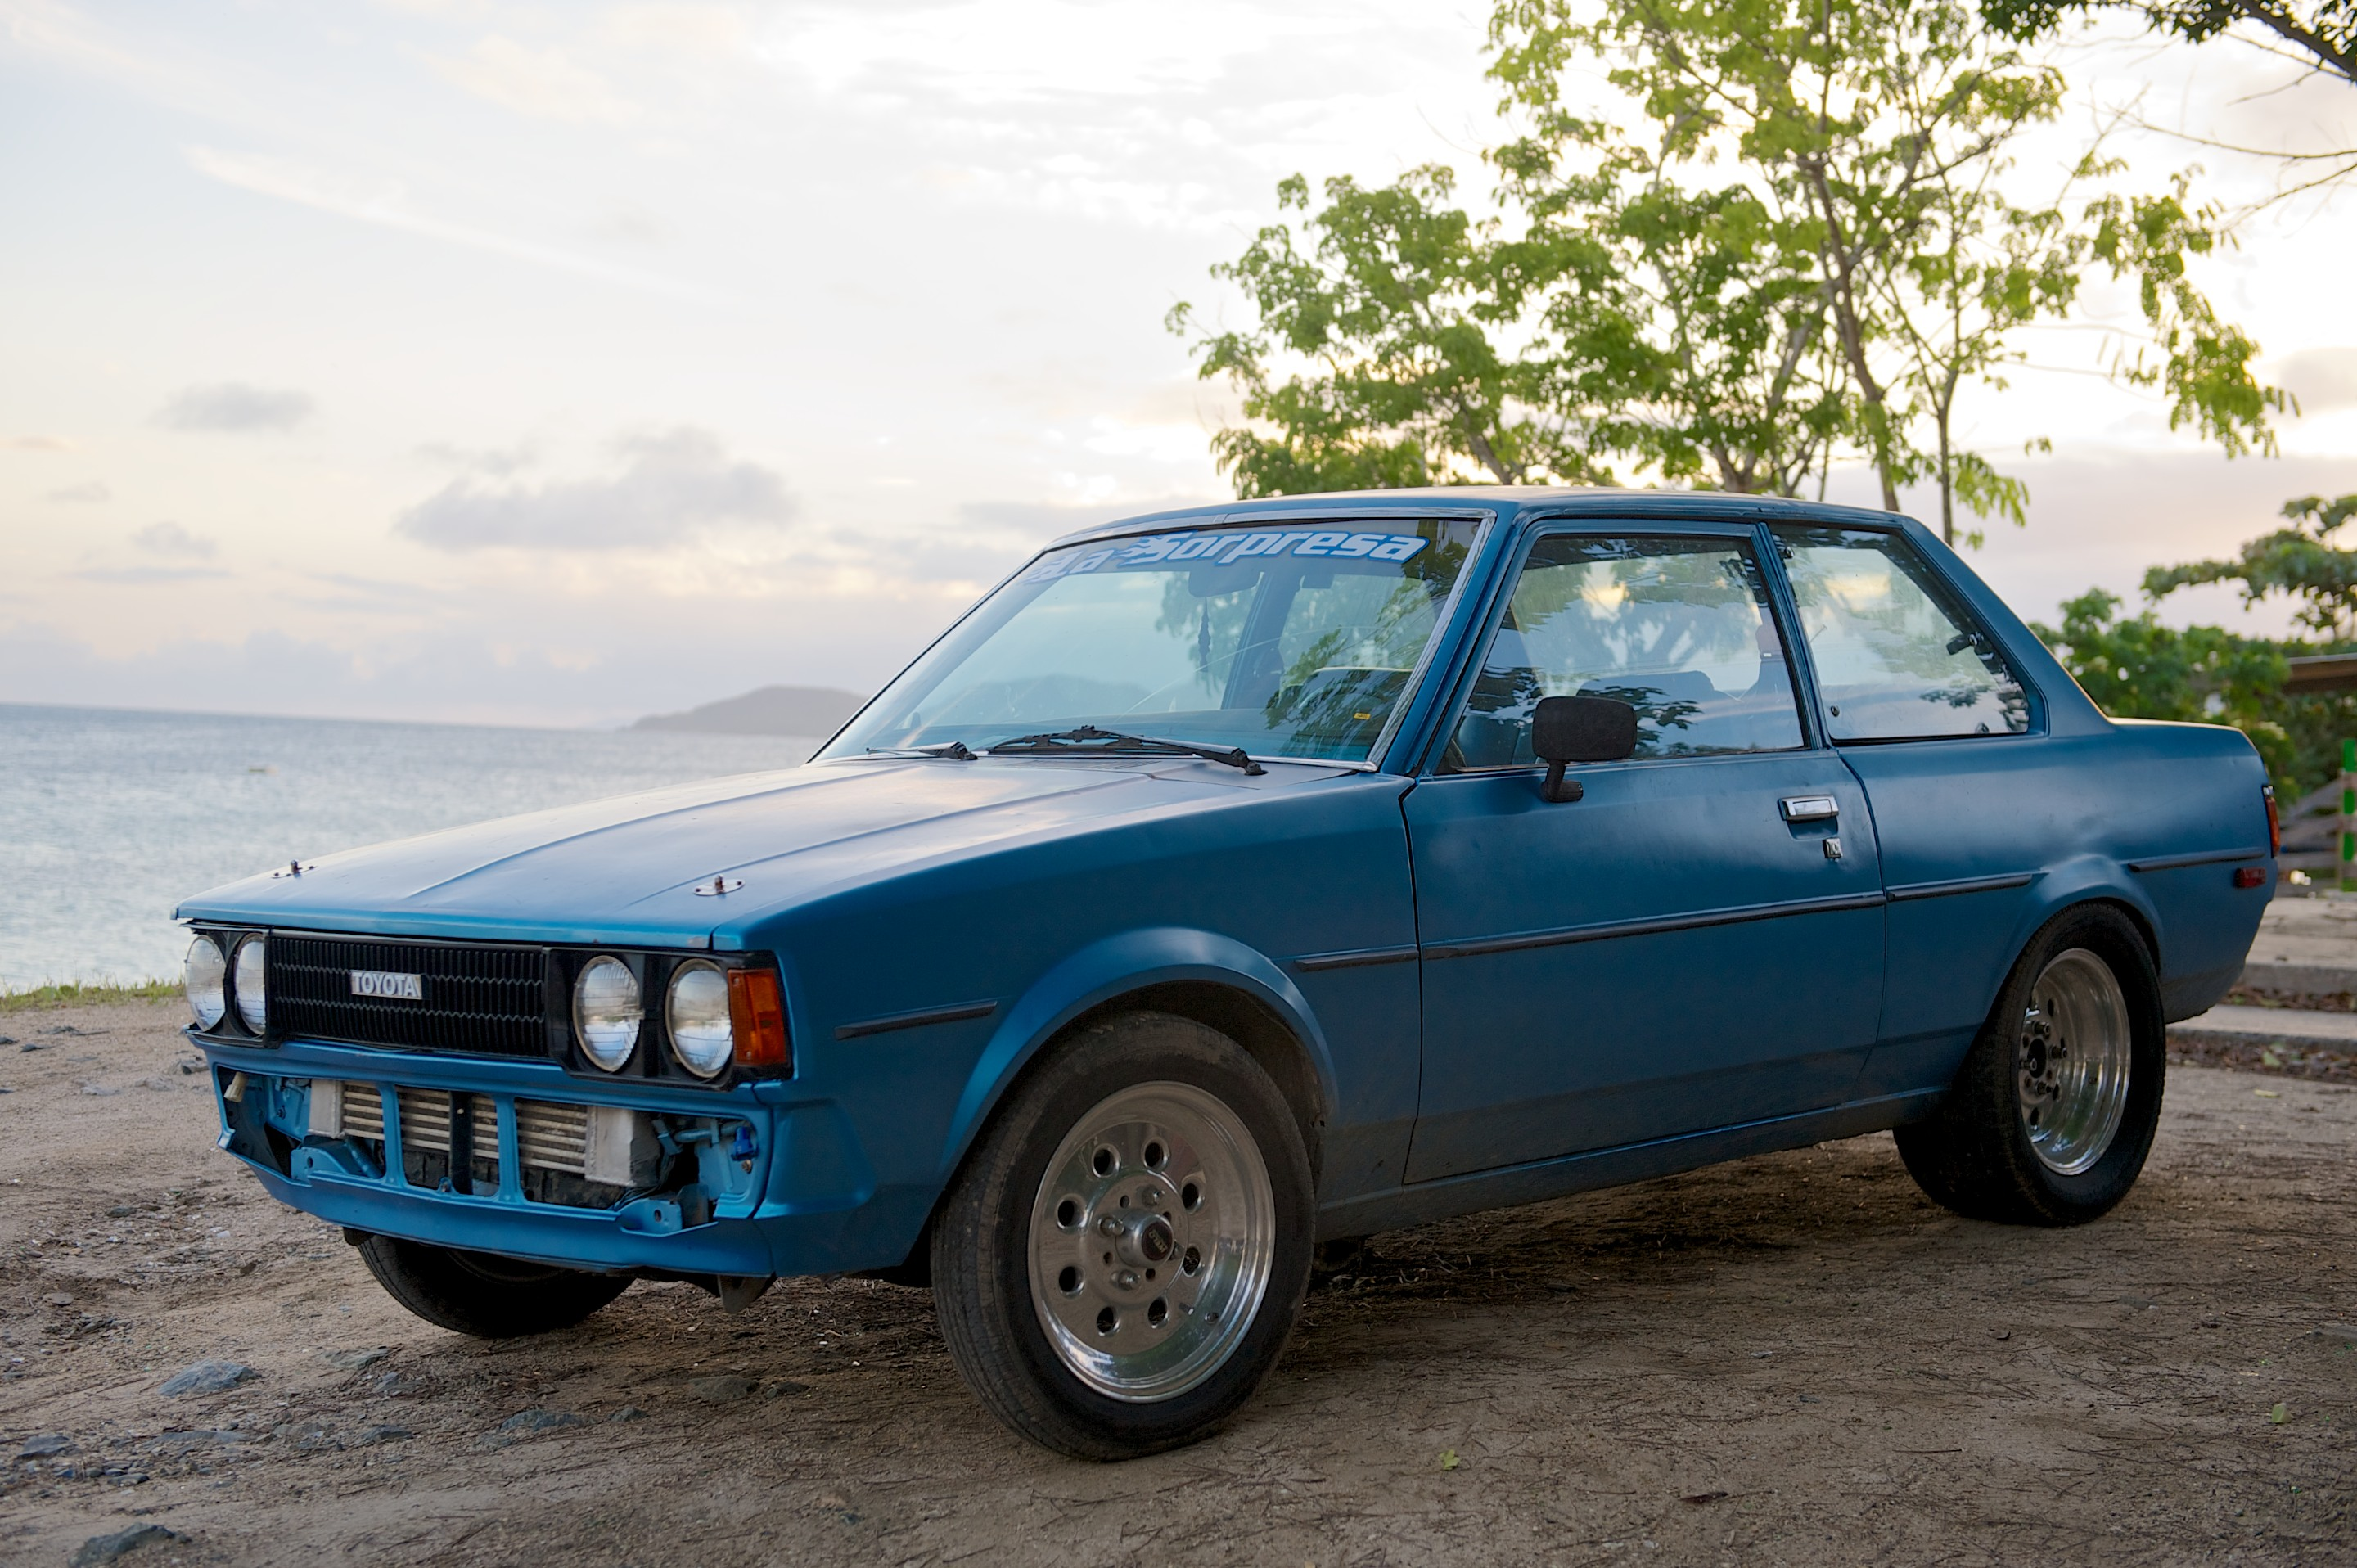 2014 Toyota Corolla For Sale >> 1980 Toyota Corolla Coupe - JuMoSc